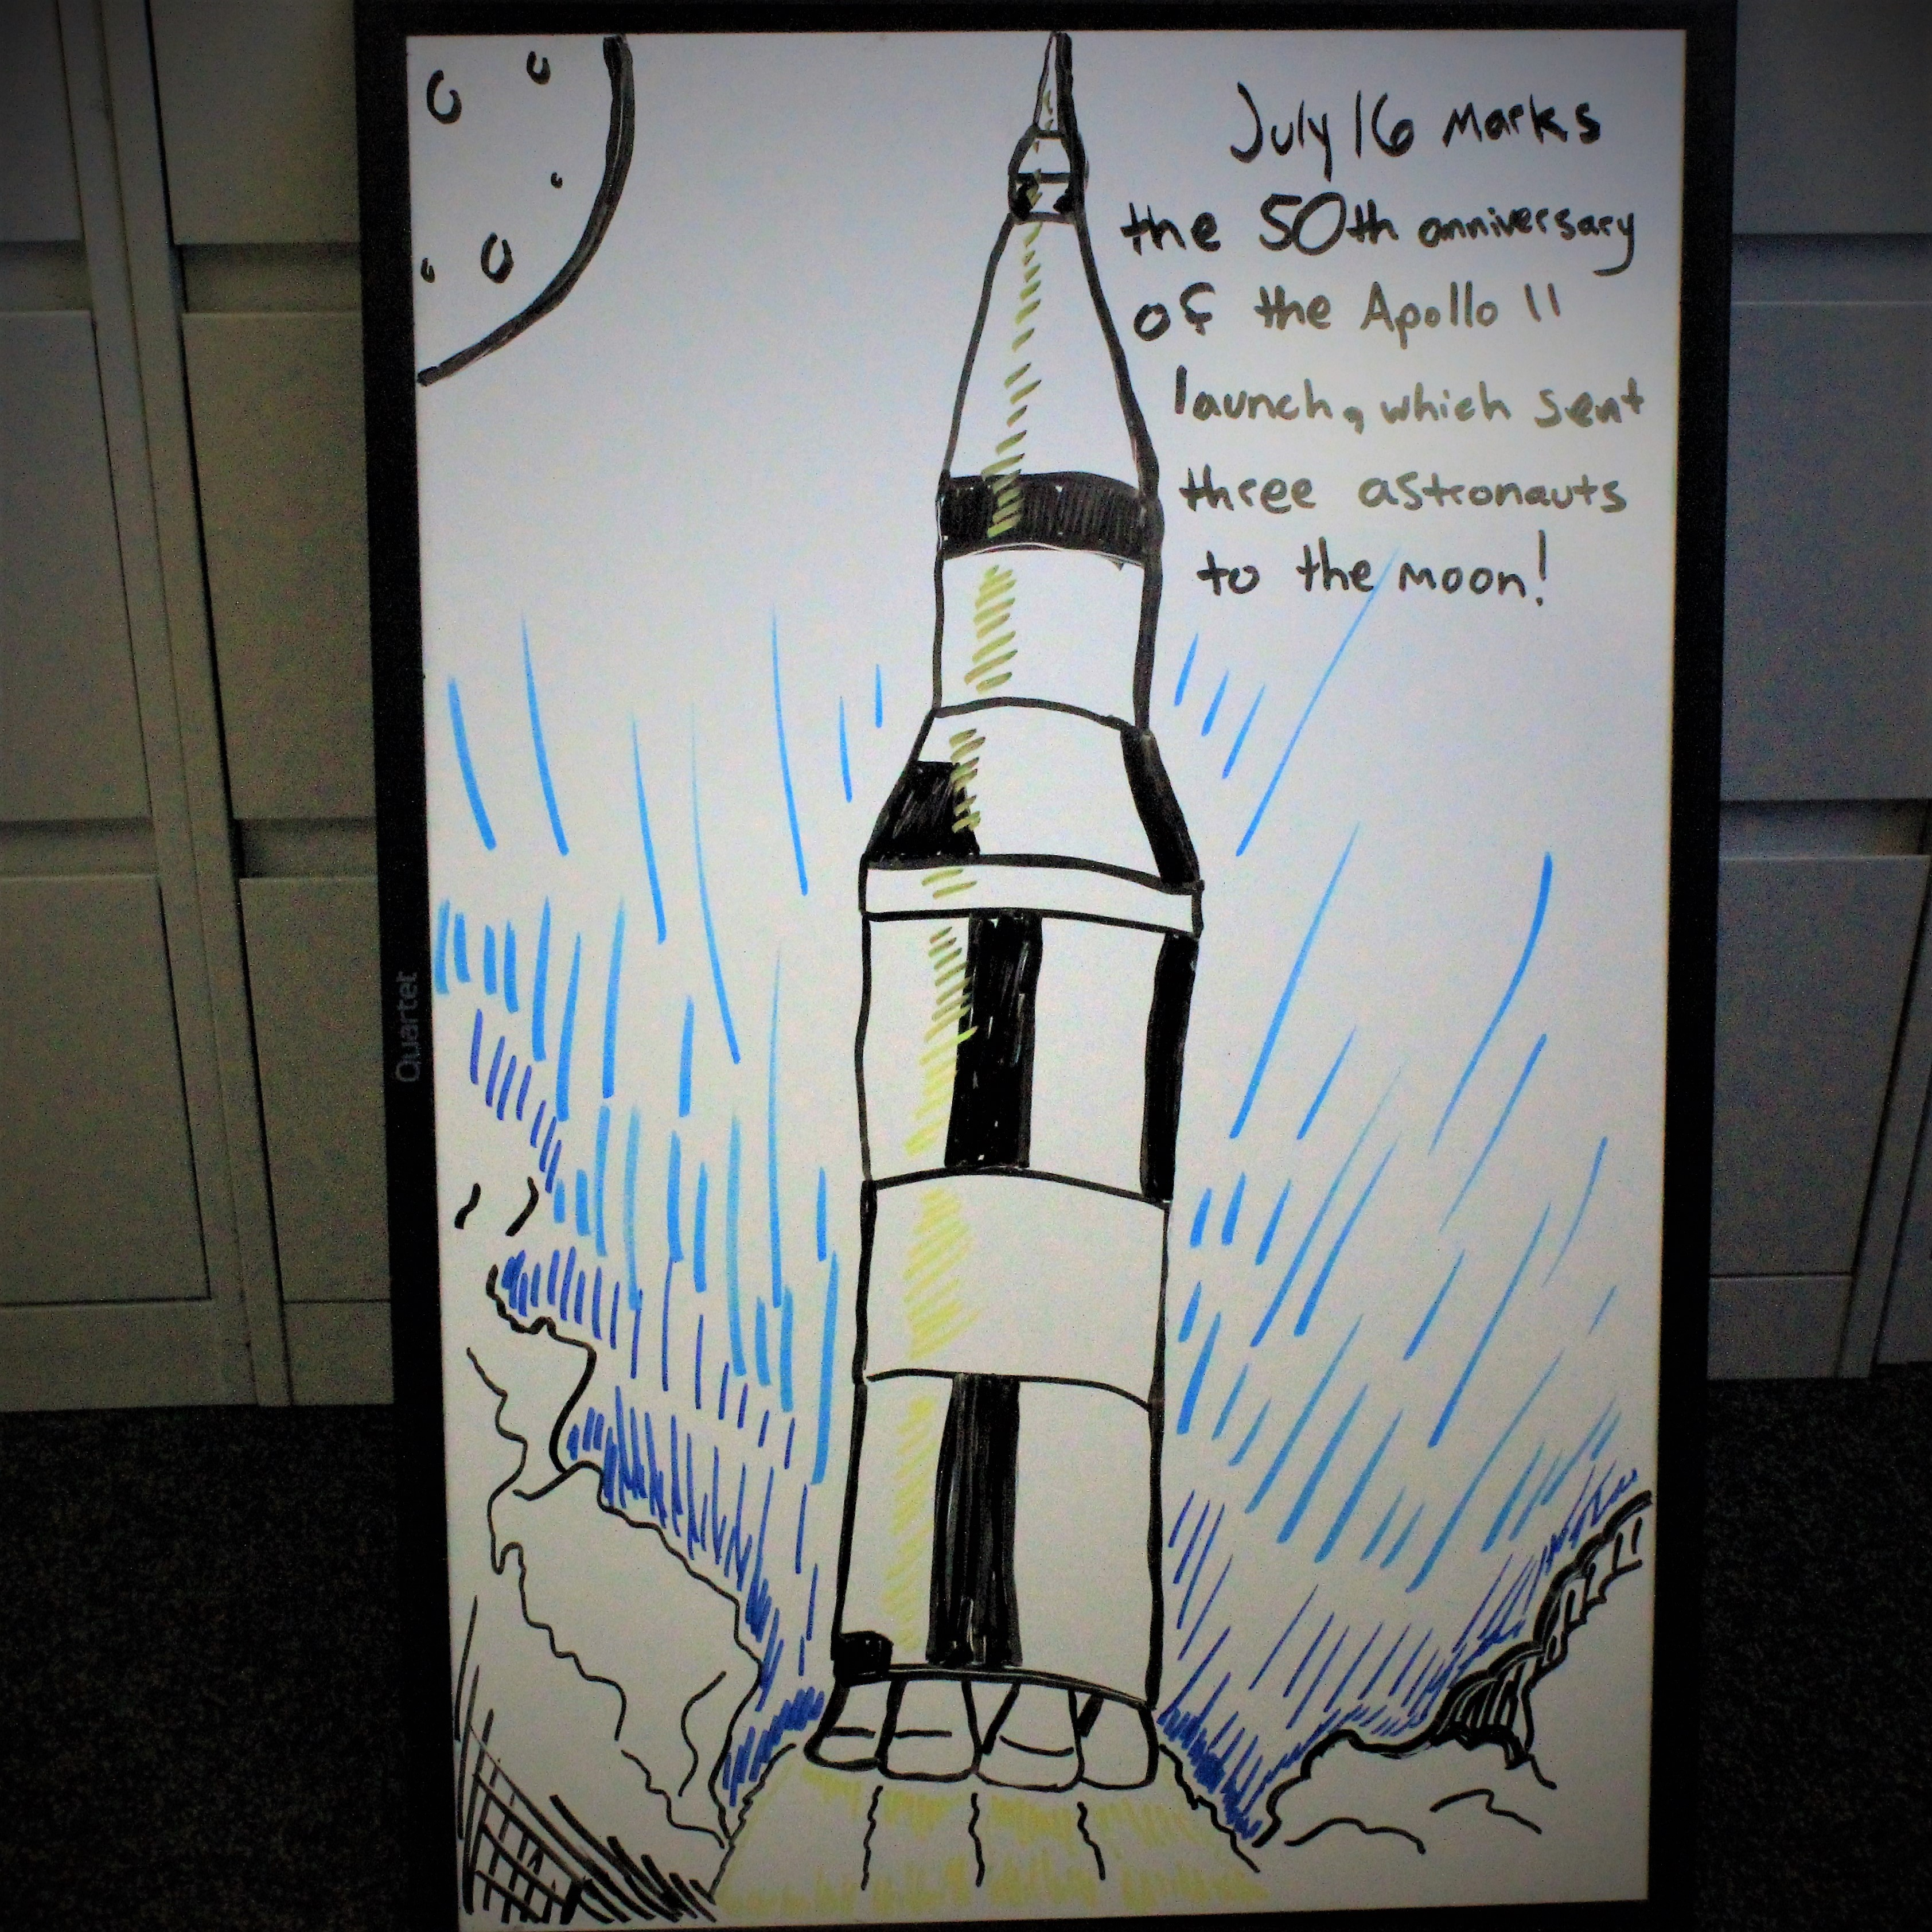 A white board drawing of the Apollo 11 launch.